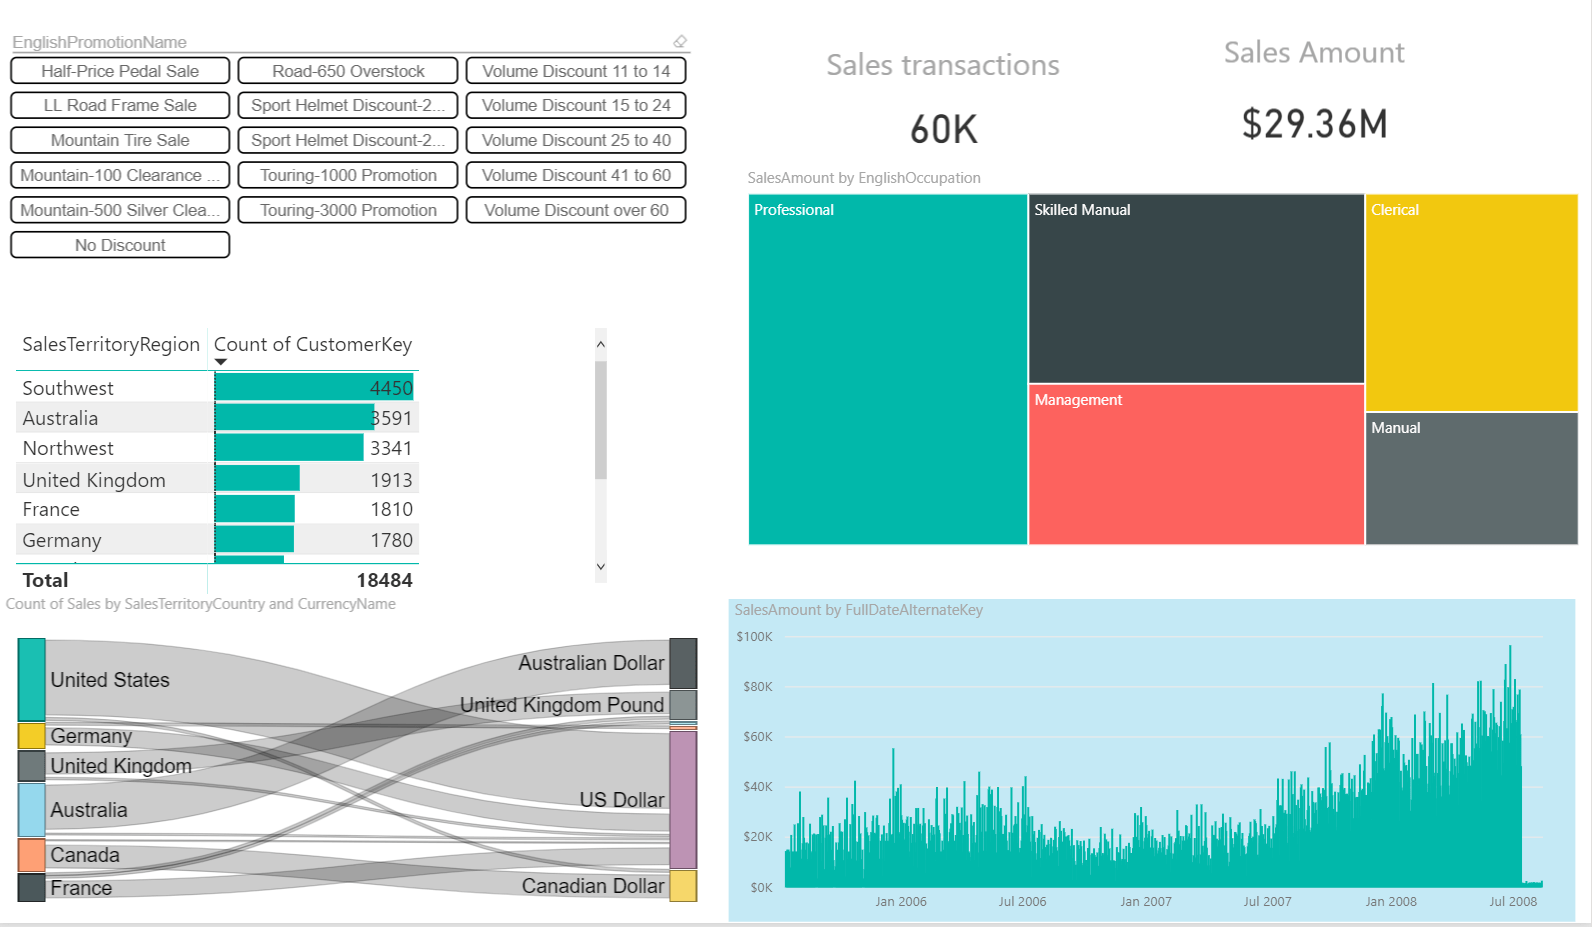 Showing only slicer data that have facts in Power BI (and